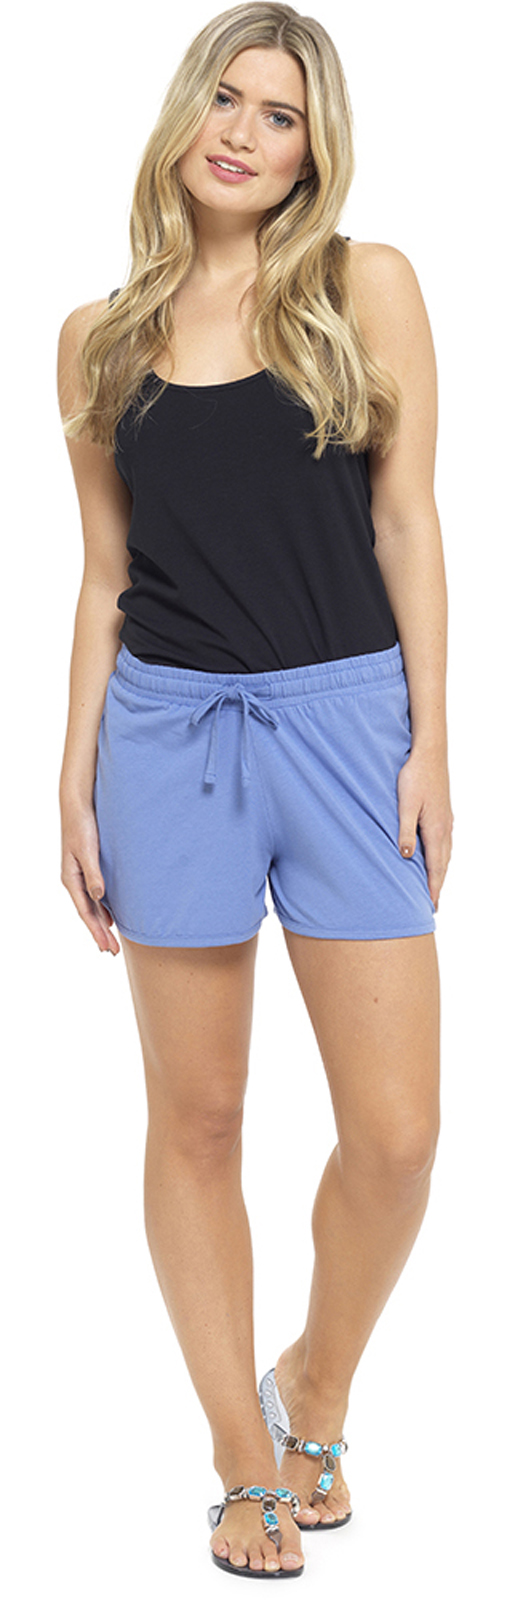 Buy New Cotton Shorts for Women at Macy's. Shop for Womens Shorts Online at fefdinterested.gq Free Shipping Available!